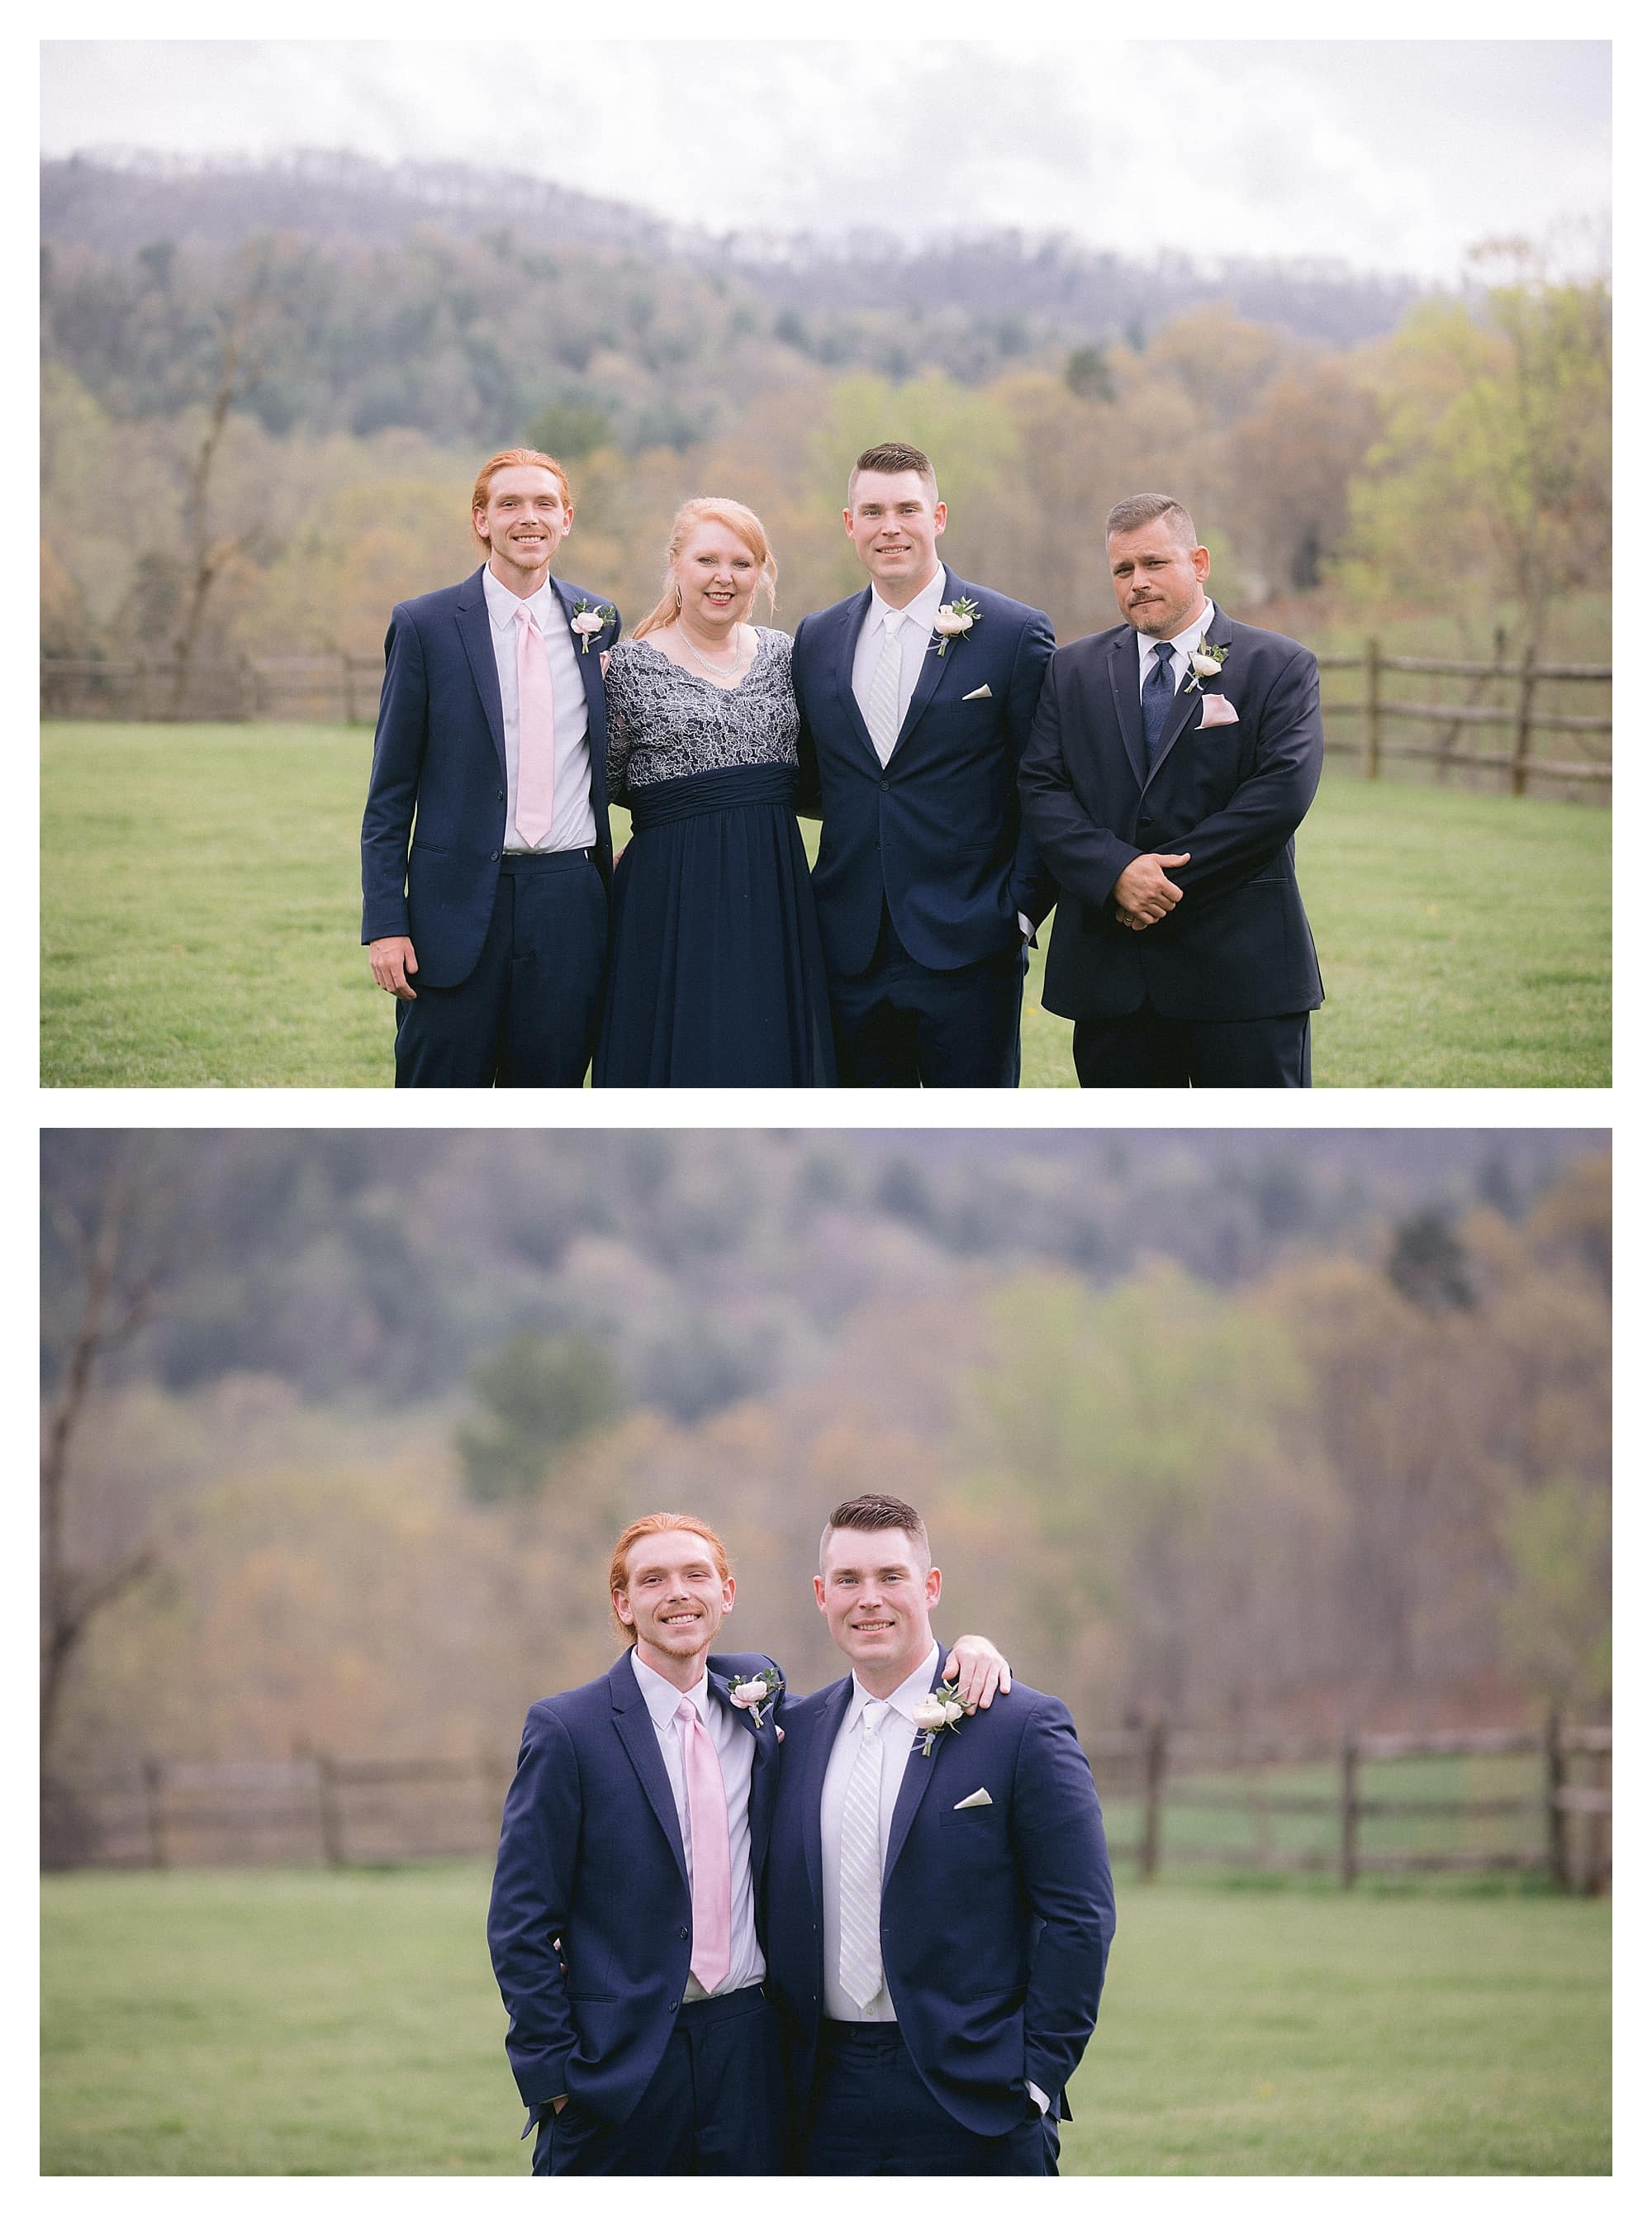 Groom posing with family in grassy field